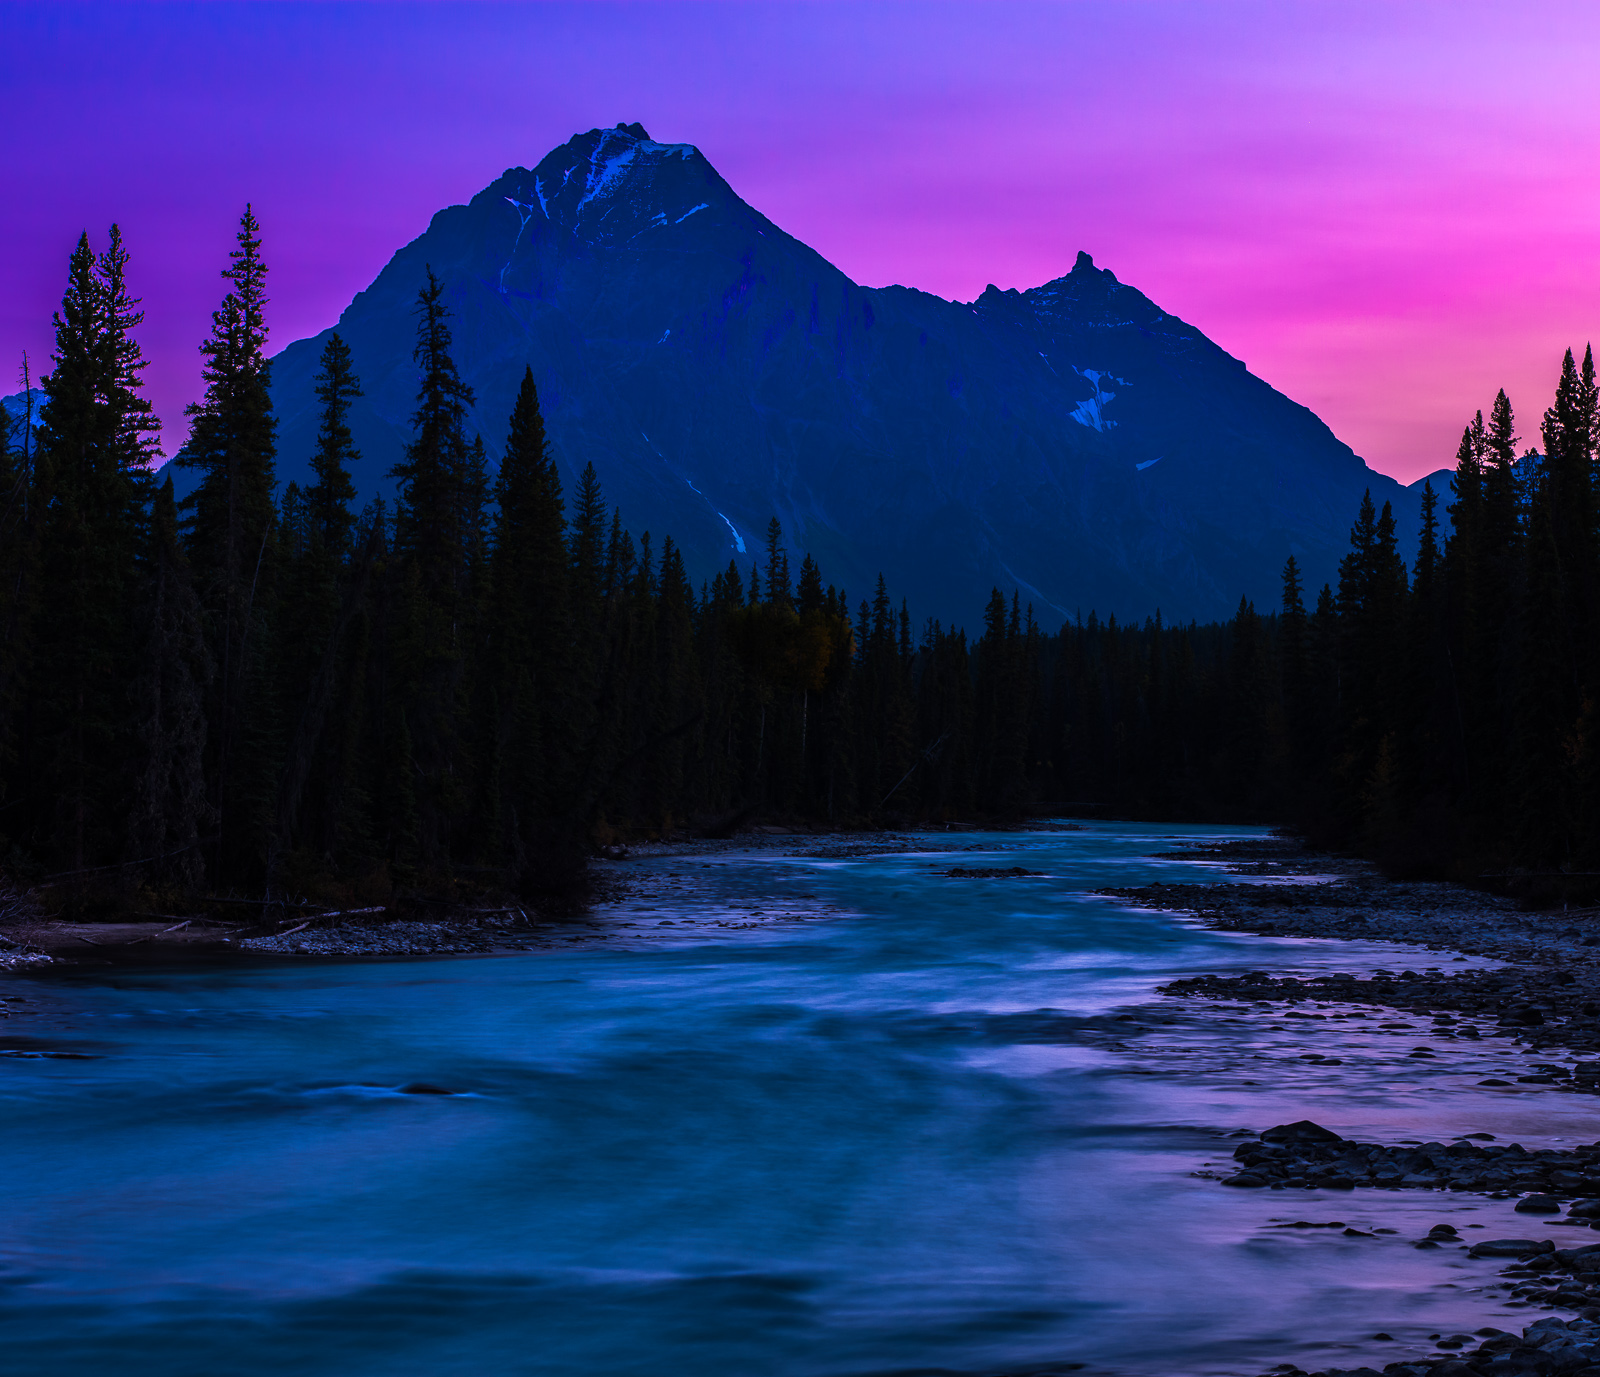 Sun setting behind the mountains with the last light filling the river blues hues as the night come-forth.